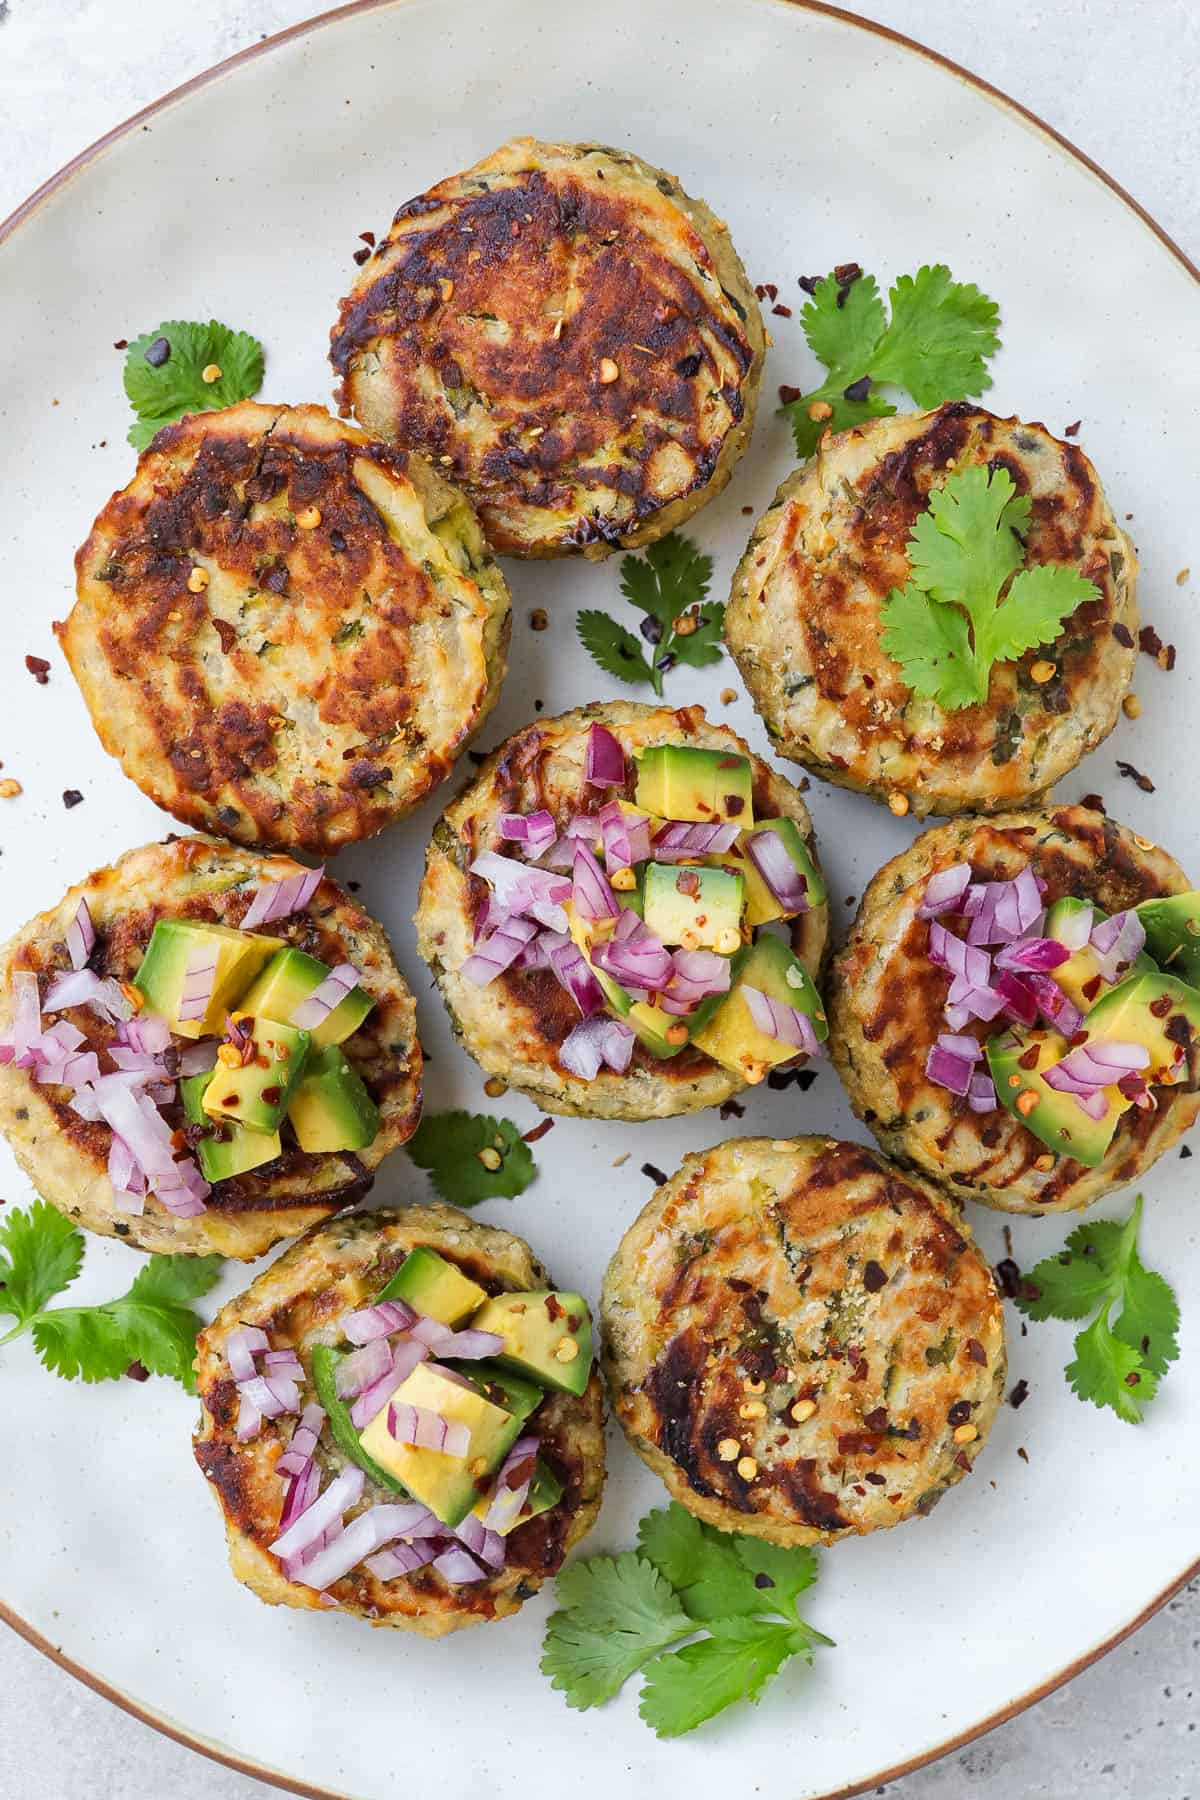 Tuna cakes on plate with chopped avocado, red onion and chili flakes on top of each one. Fresh coriander leaves to decorate.